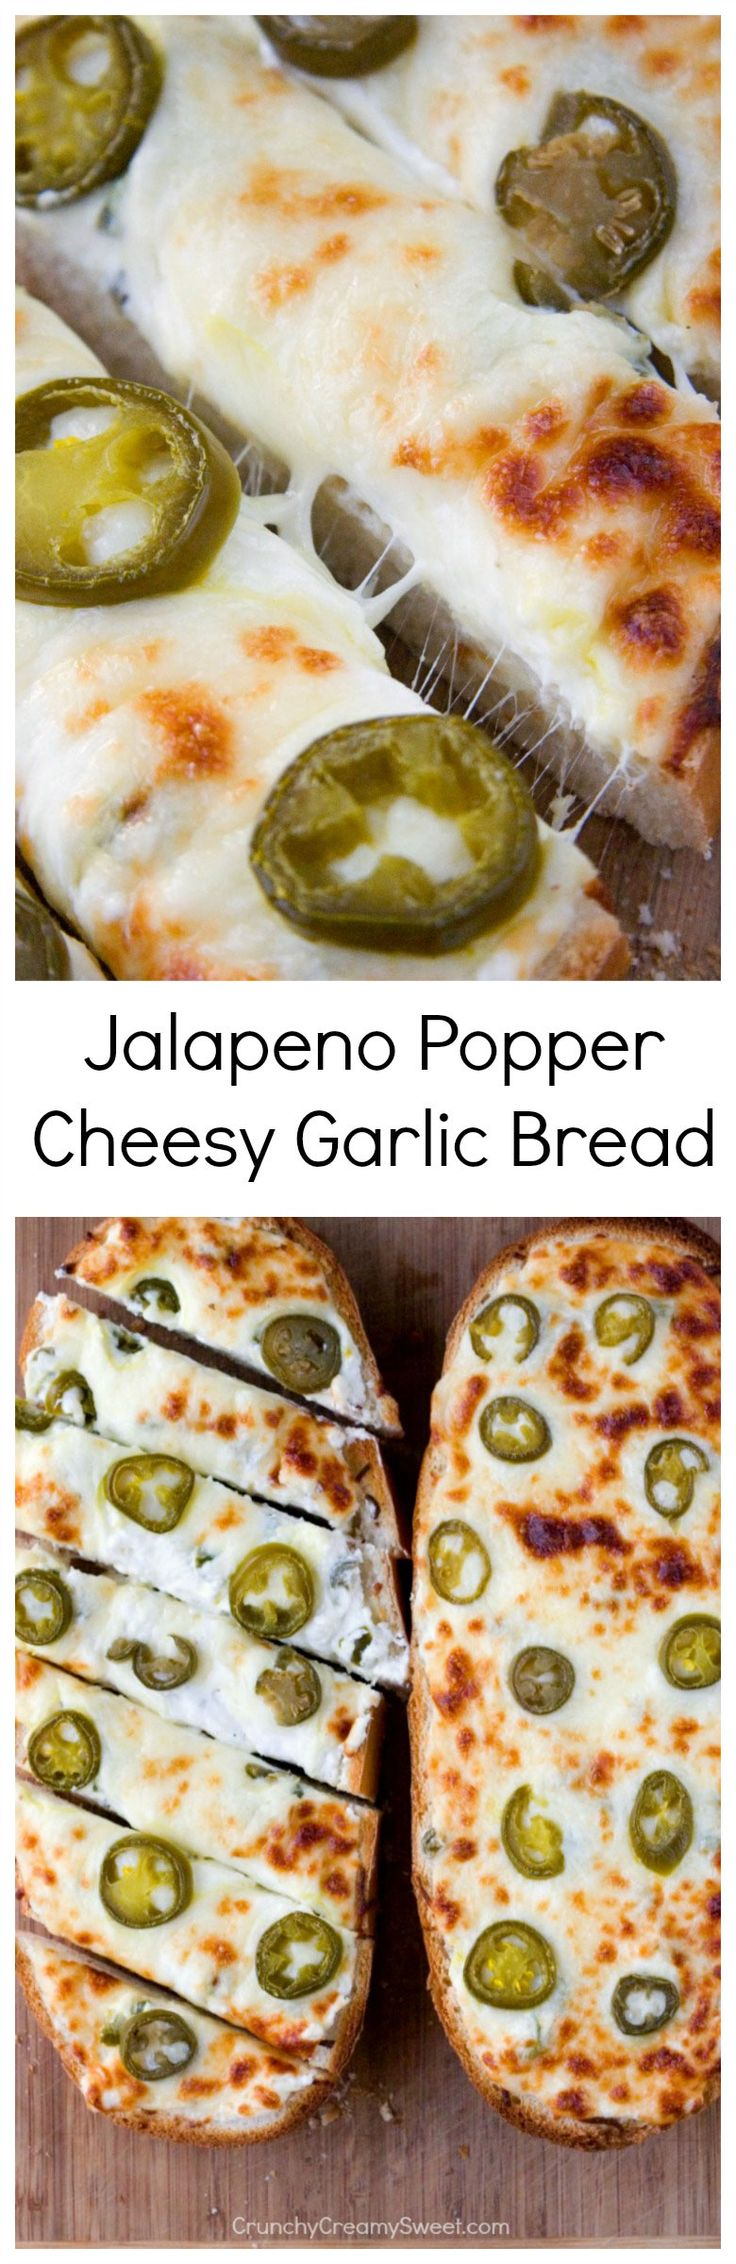 Jalapeno Popper Cheesy Garlic Bread – spicy takes on yummy cheesy garlic bread! You will love it! It's the perfect game day food!